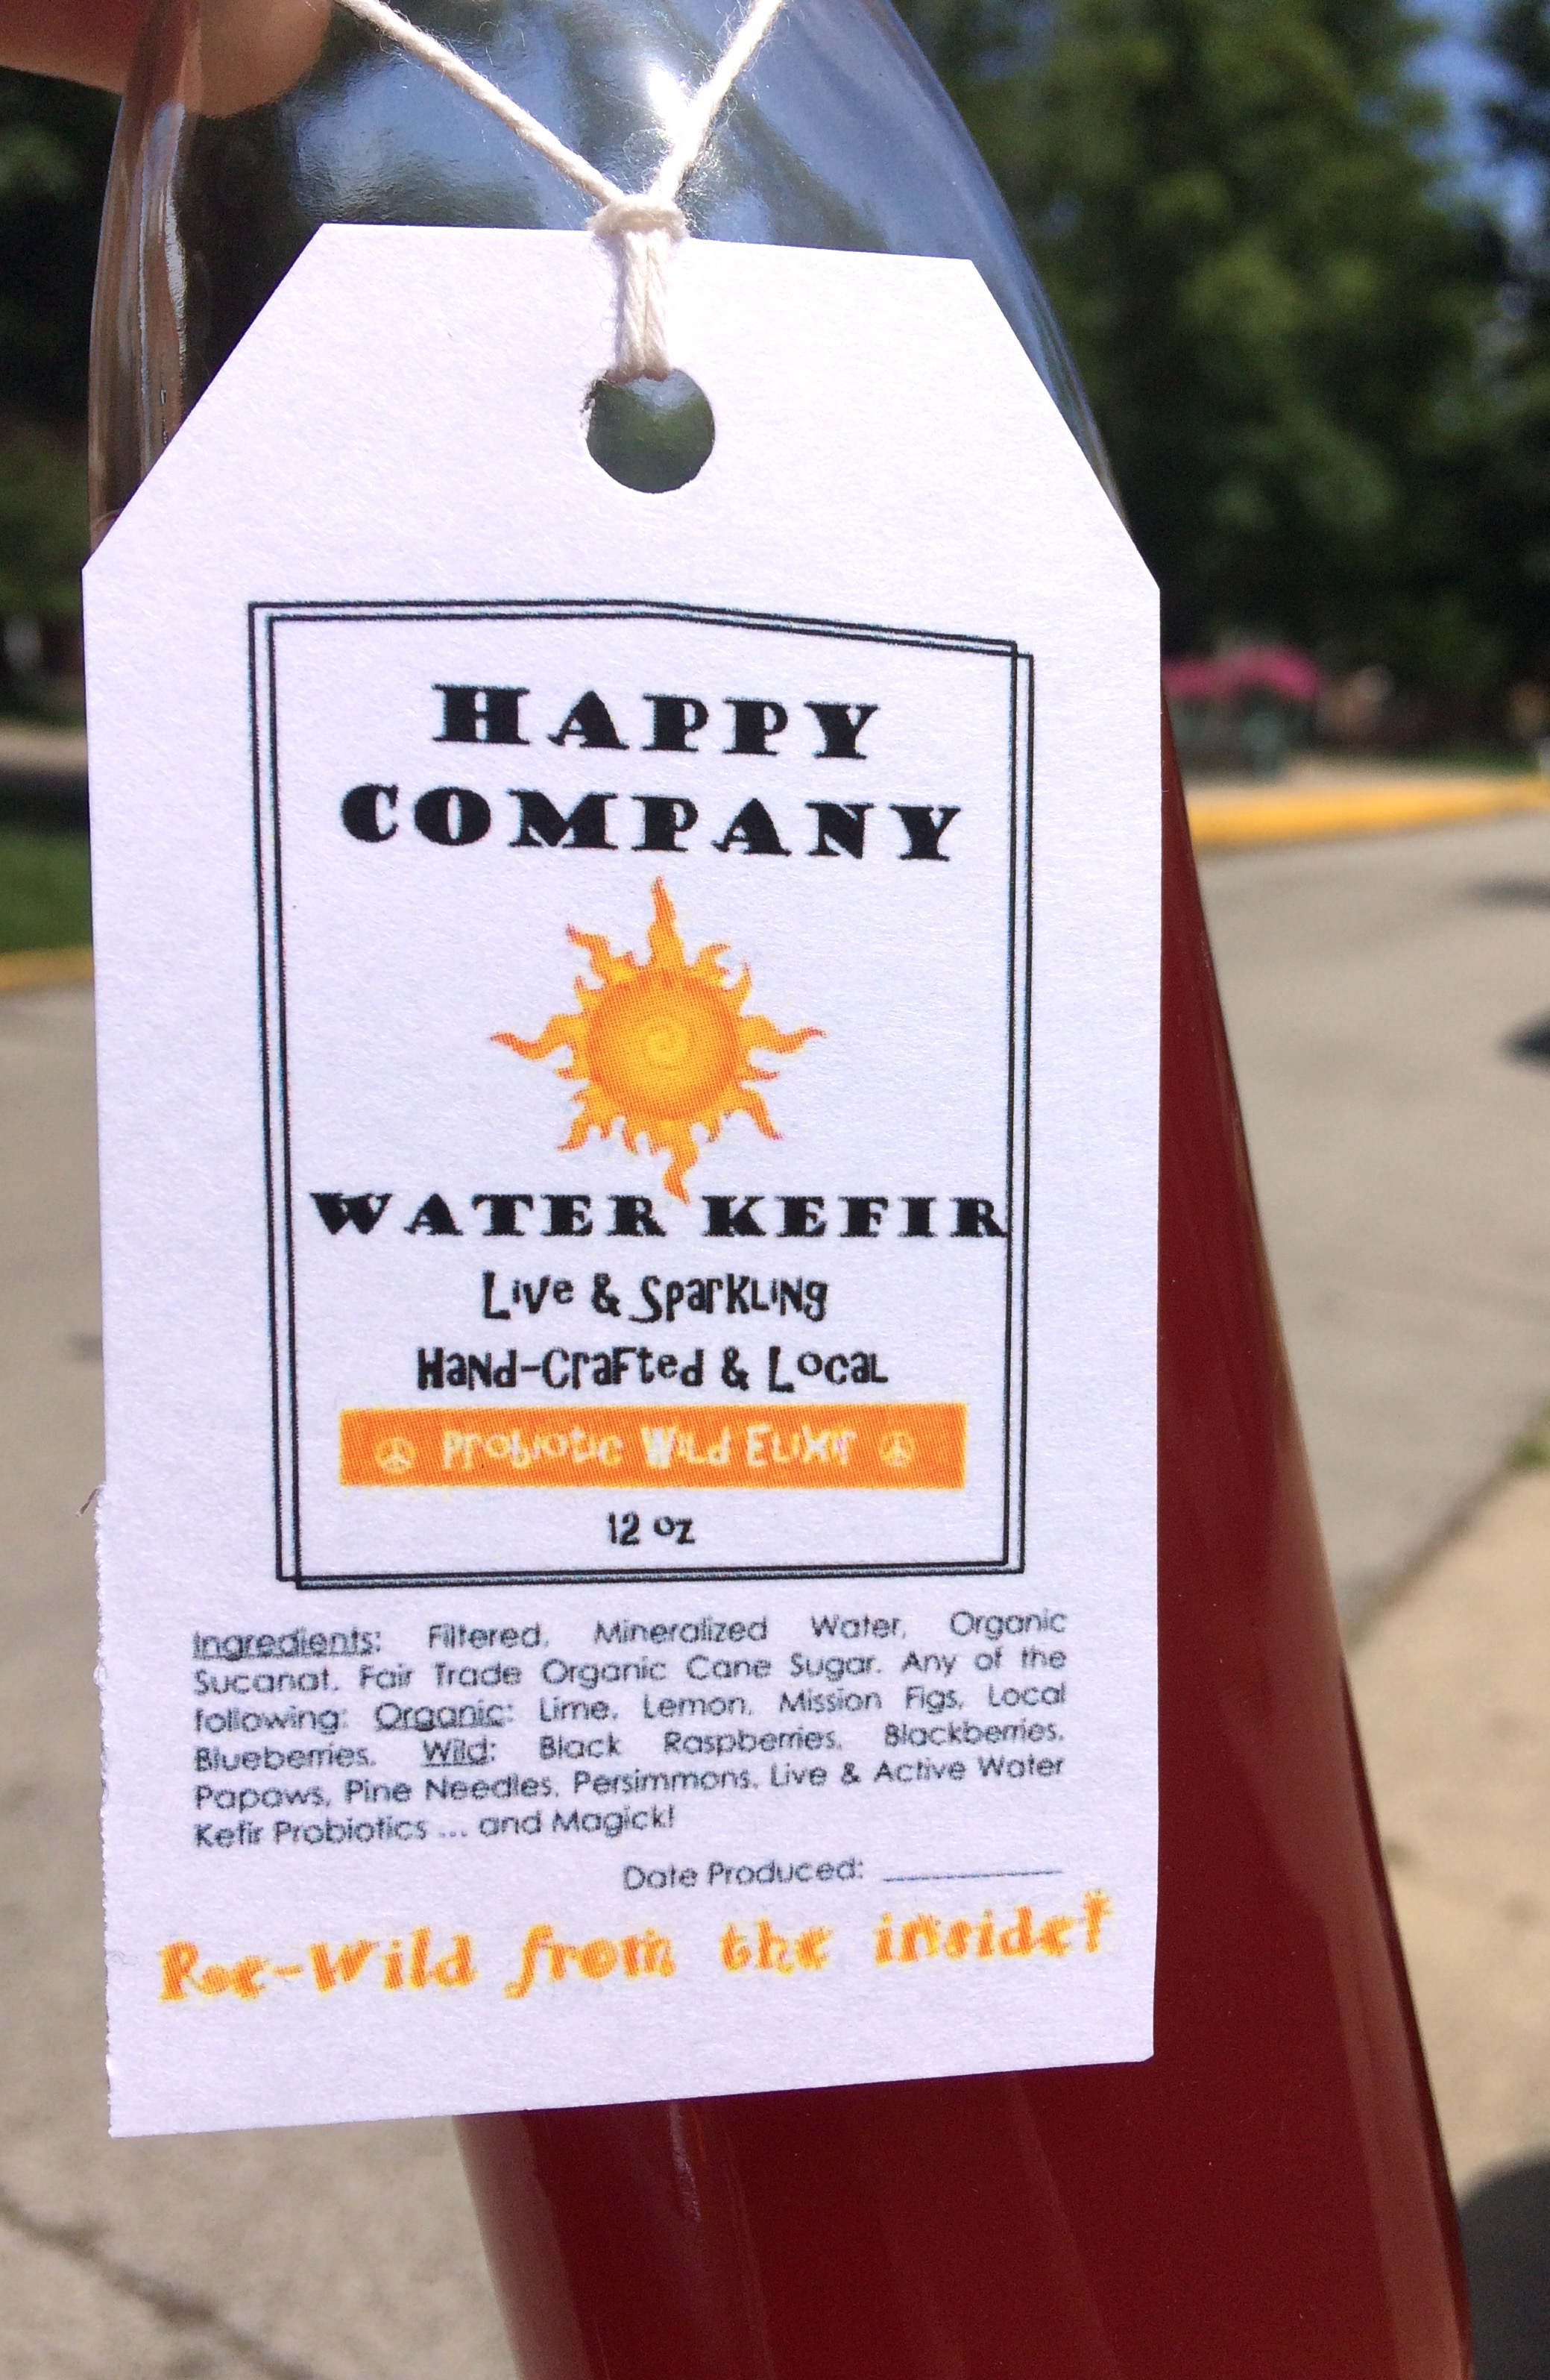 HAPPY COMPANY WATER KEFIR - Live & Sparkling, Hand-Crafter & Local